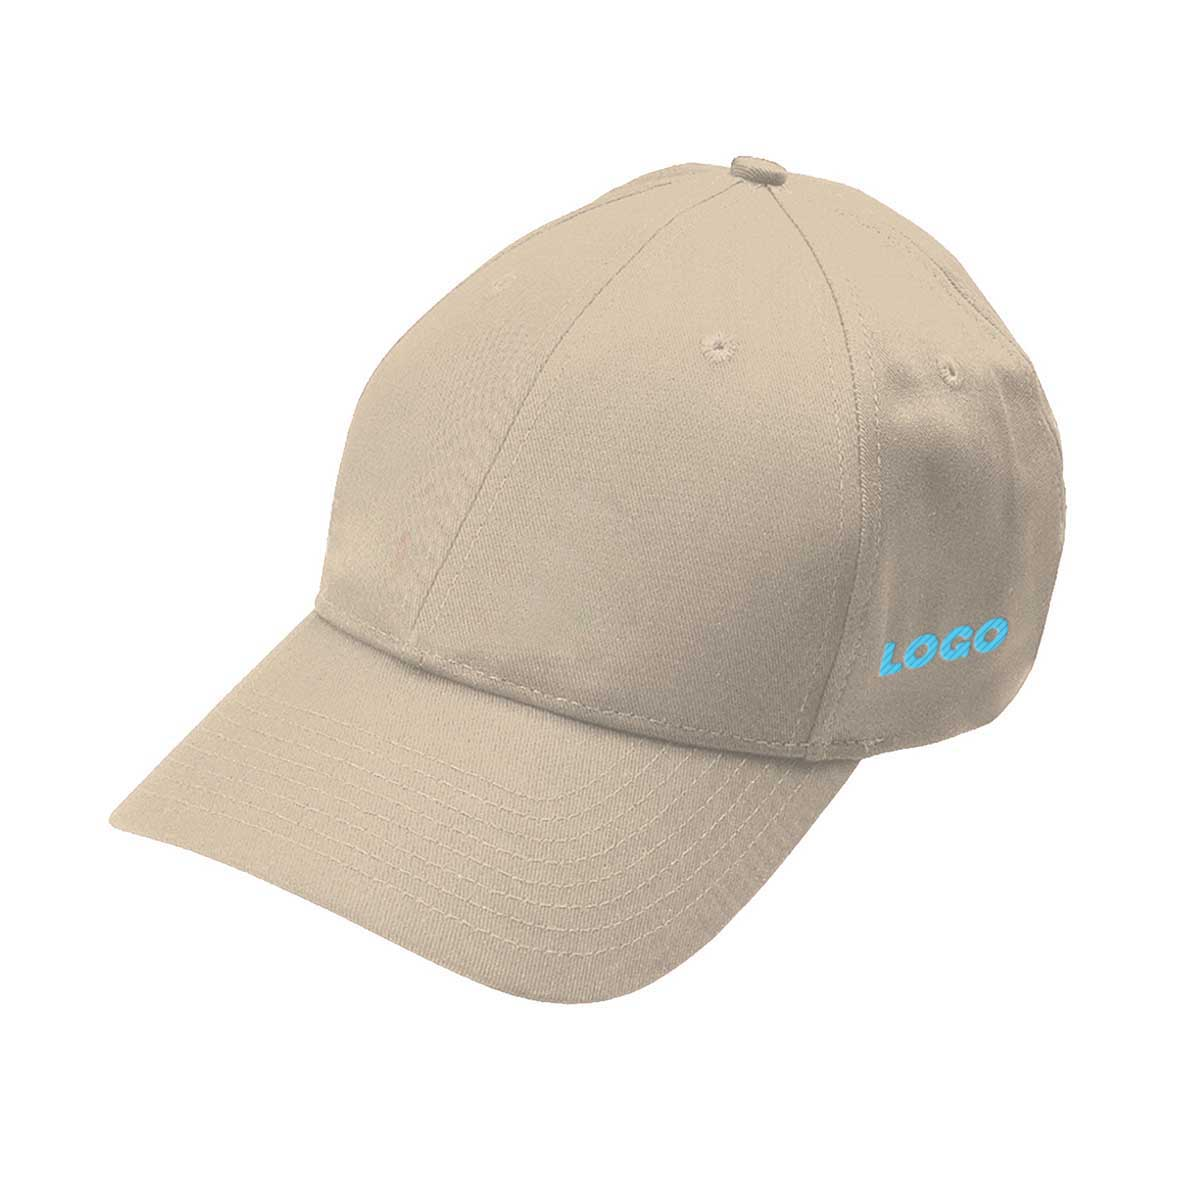 137896 eco cotton cap one location embroidery up to 7k stitches